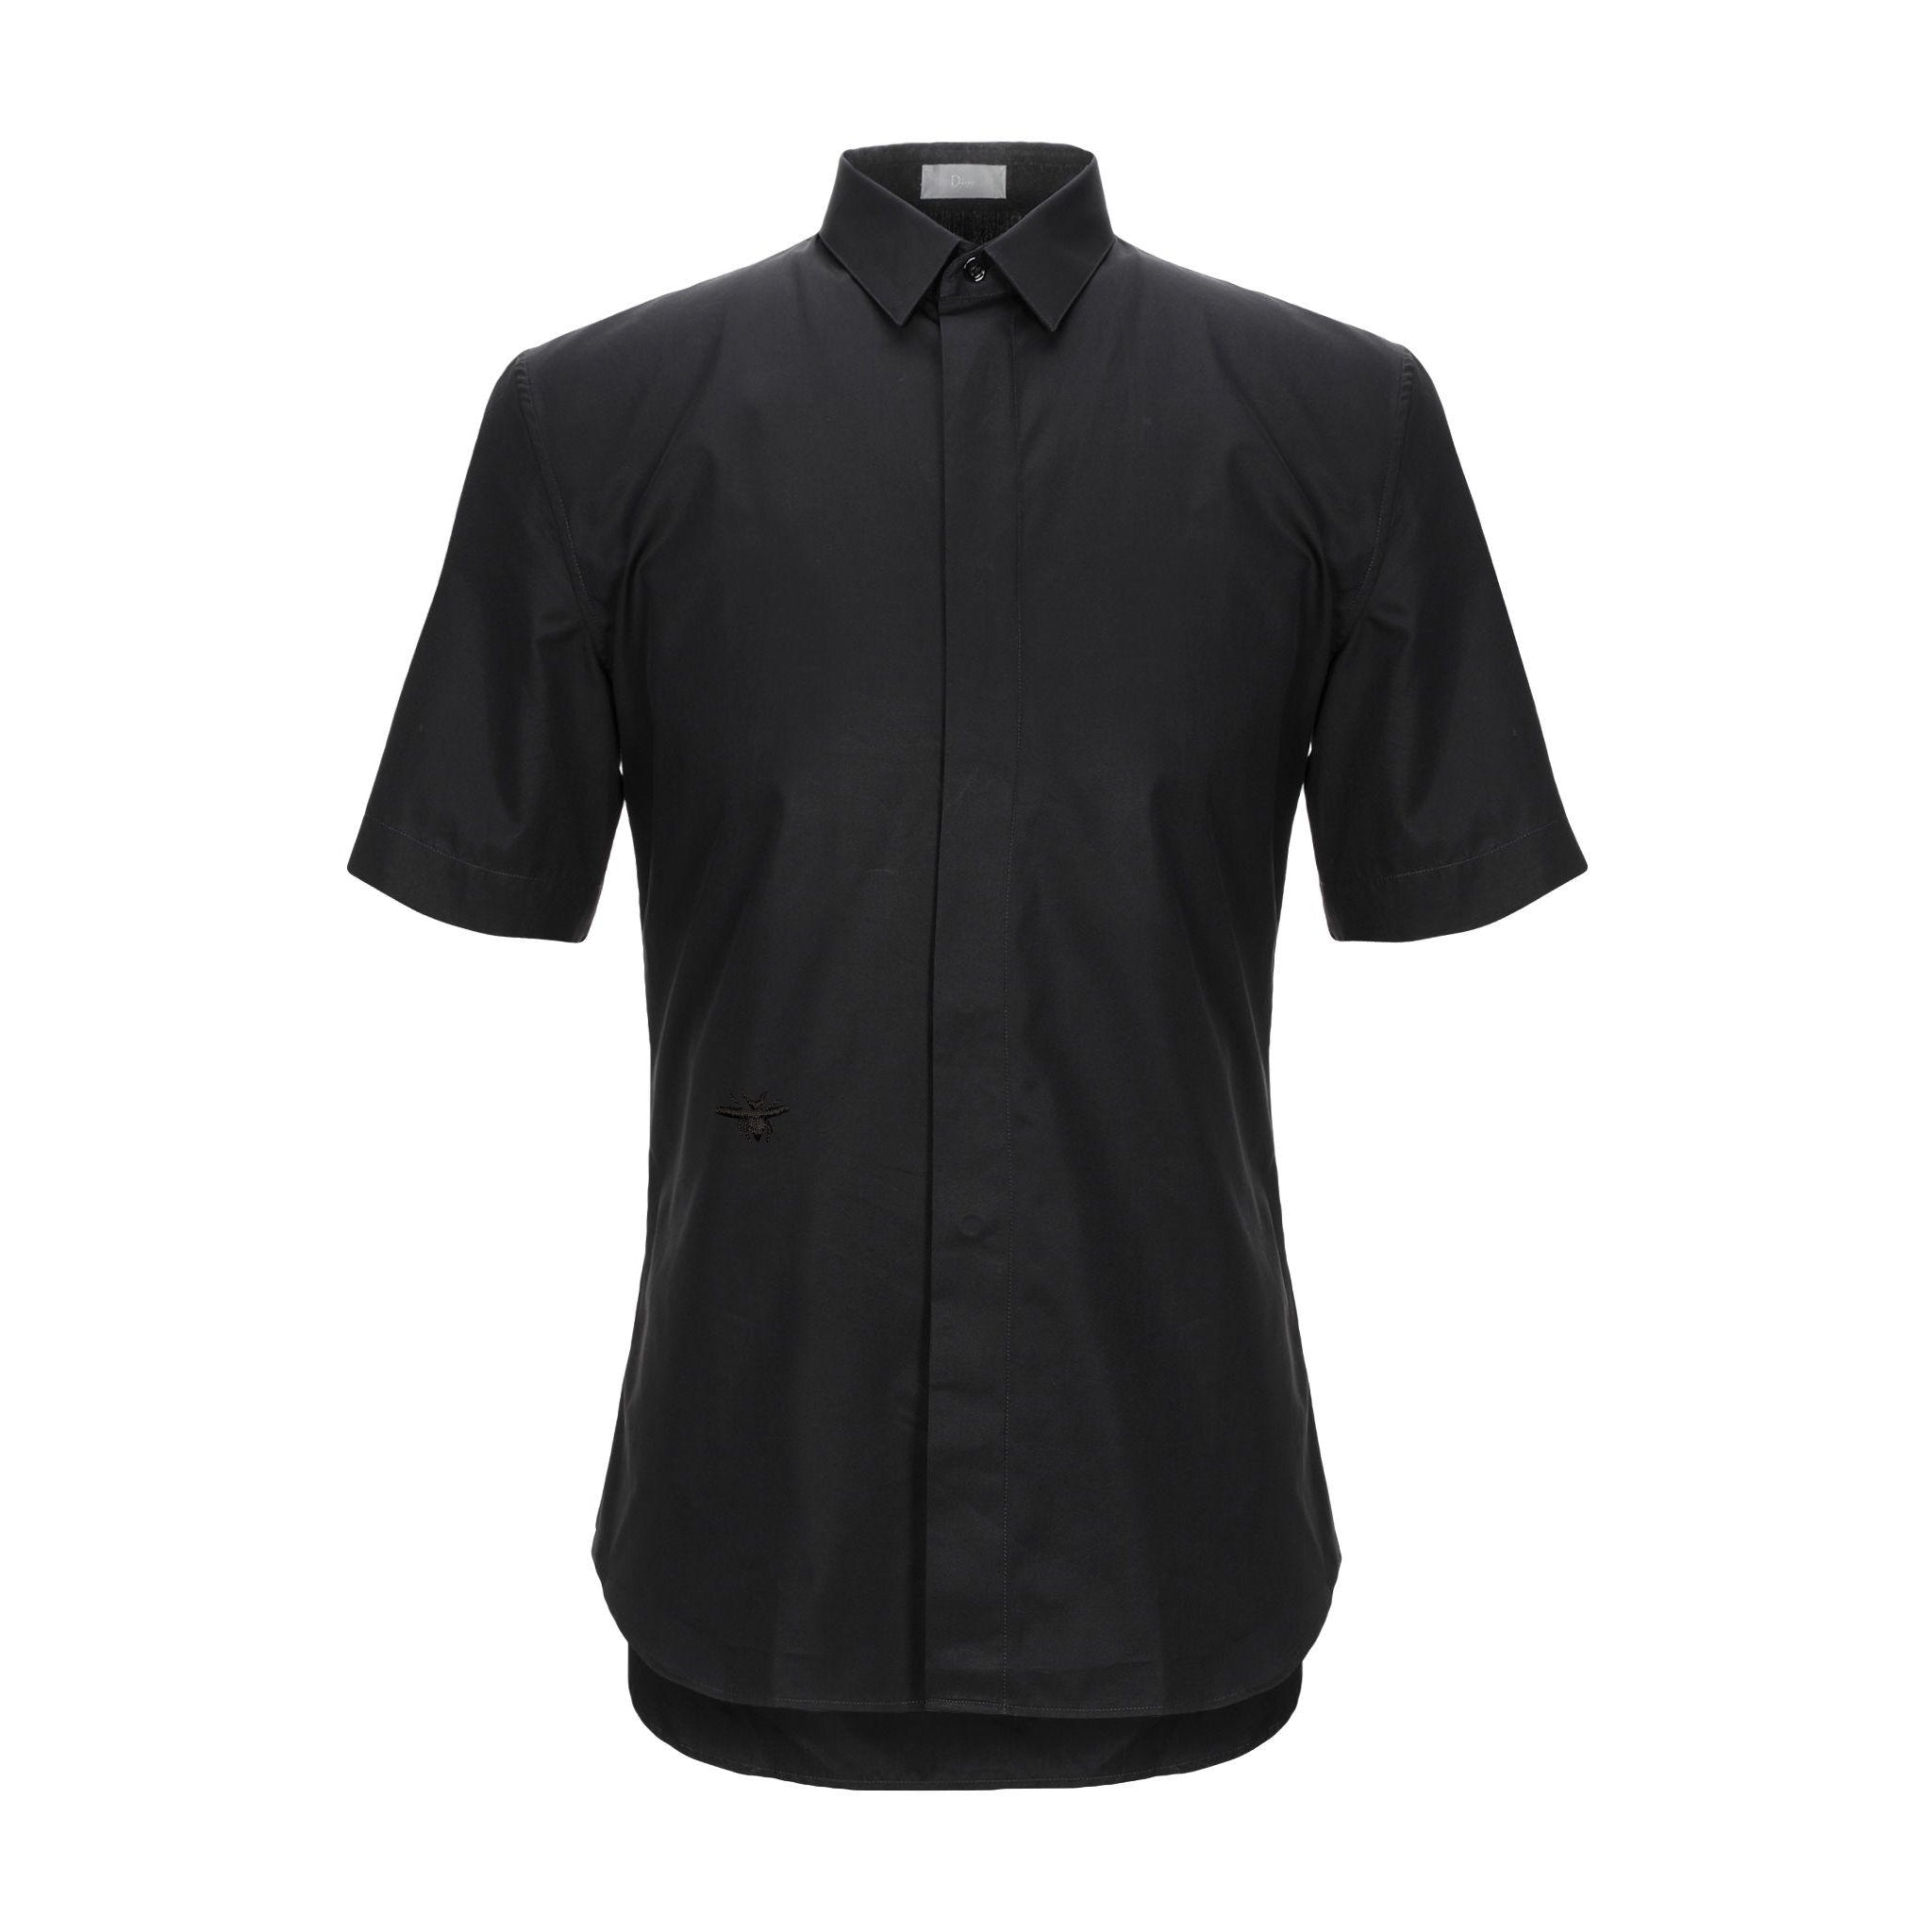 Dior Short Sleeves Poplin Shirt